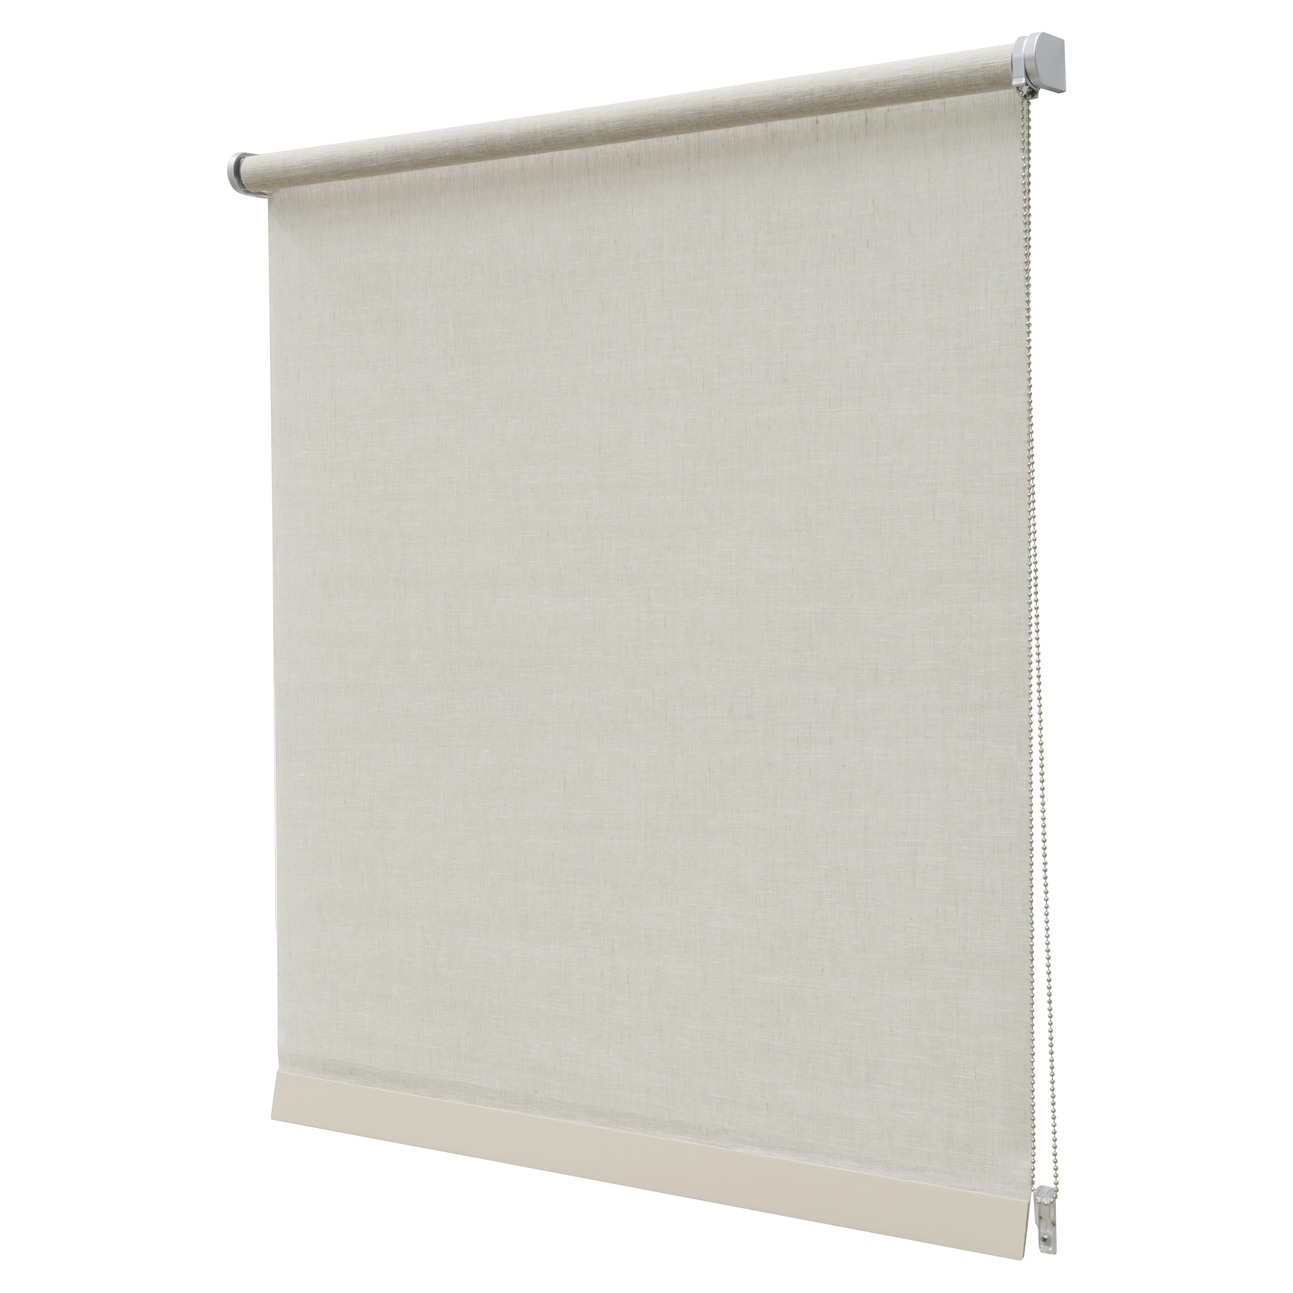 Offers On Luxury Roller Blinds Rough Blend Linen Look Cream Regarding Linen Roller Blind (Image 11 of 15)